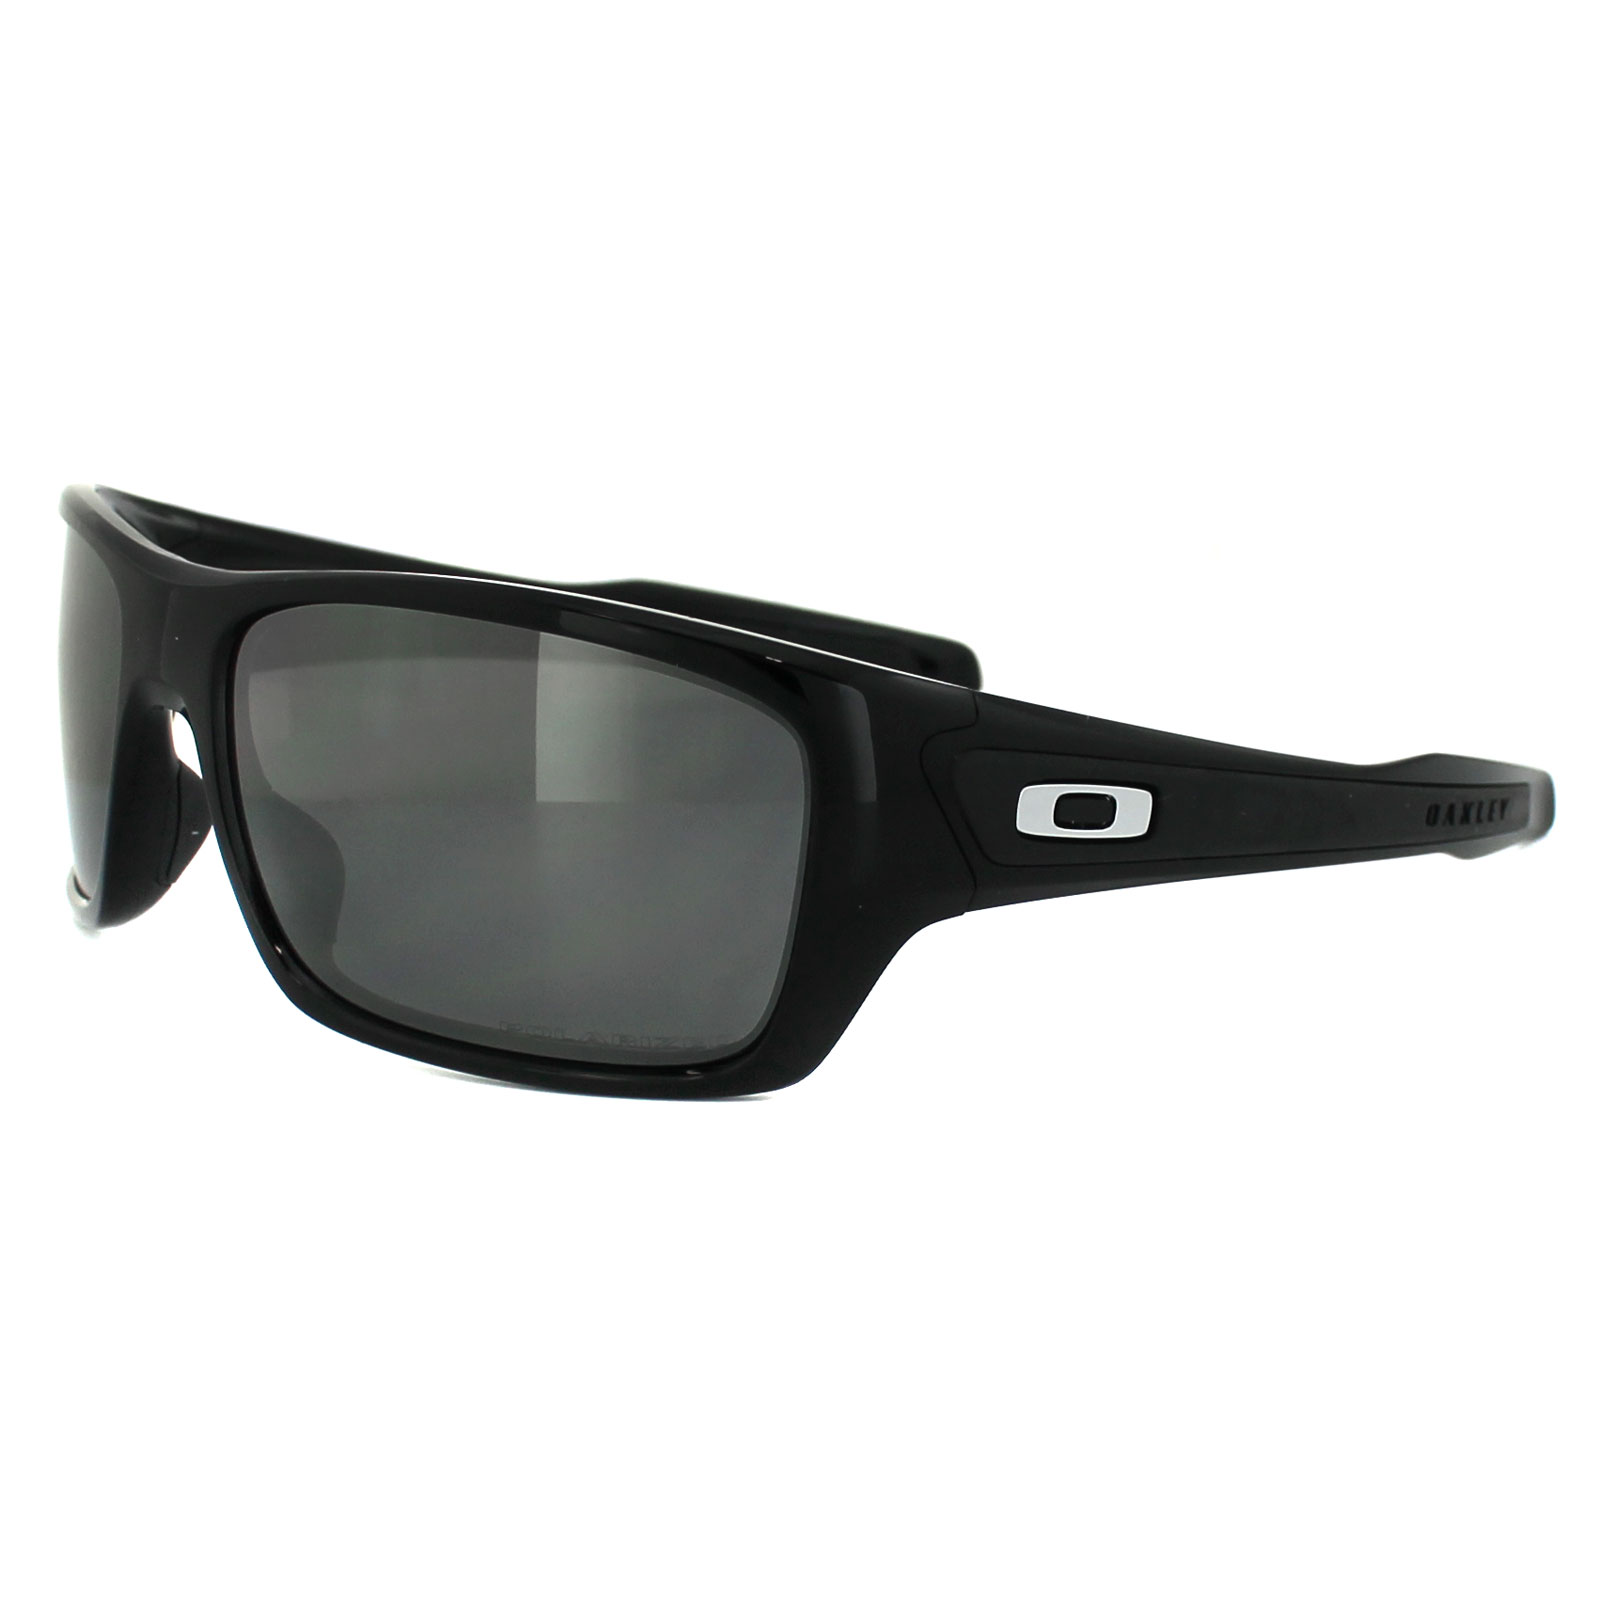 ce4963a1d4e7f Sentinel Oakley Sunglasses Turbine OO9263-08 Polished Black Black Iridium  Polarized